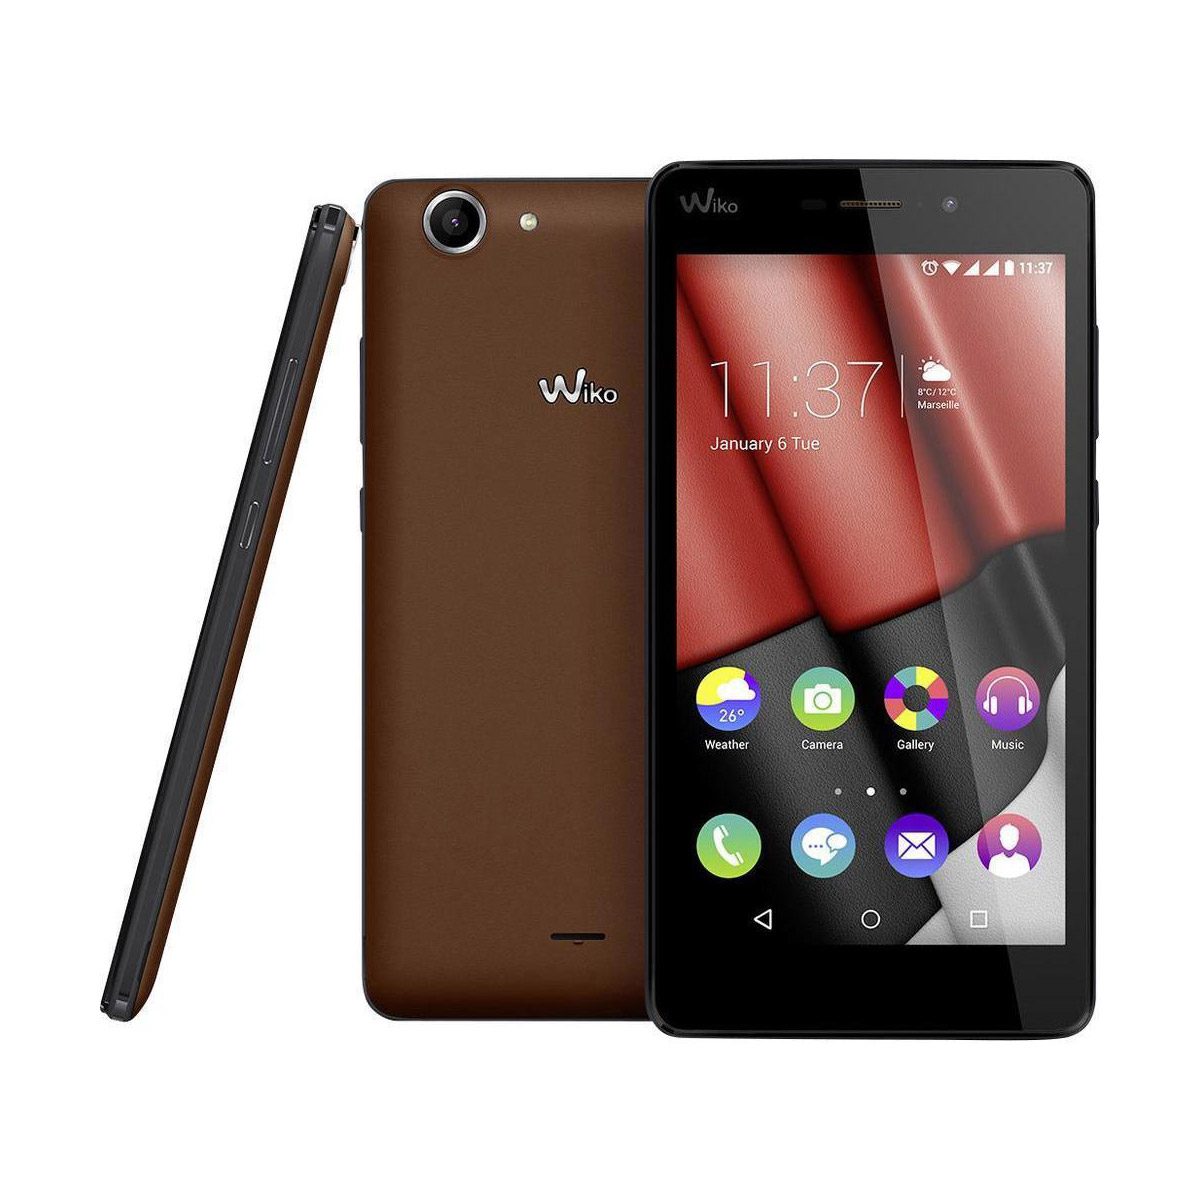 wiko pulp 4g lte dual sim android smartphone mit 16gb in chocolate online g nstig bestellen. Black Bedroom Furniture Sets. Home Design Ideas